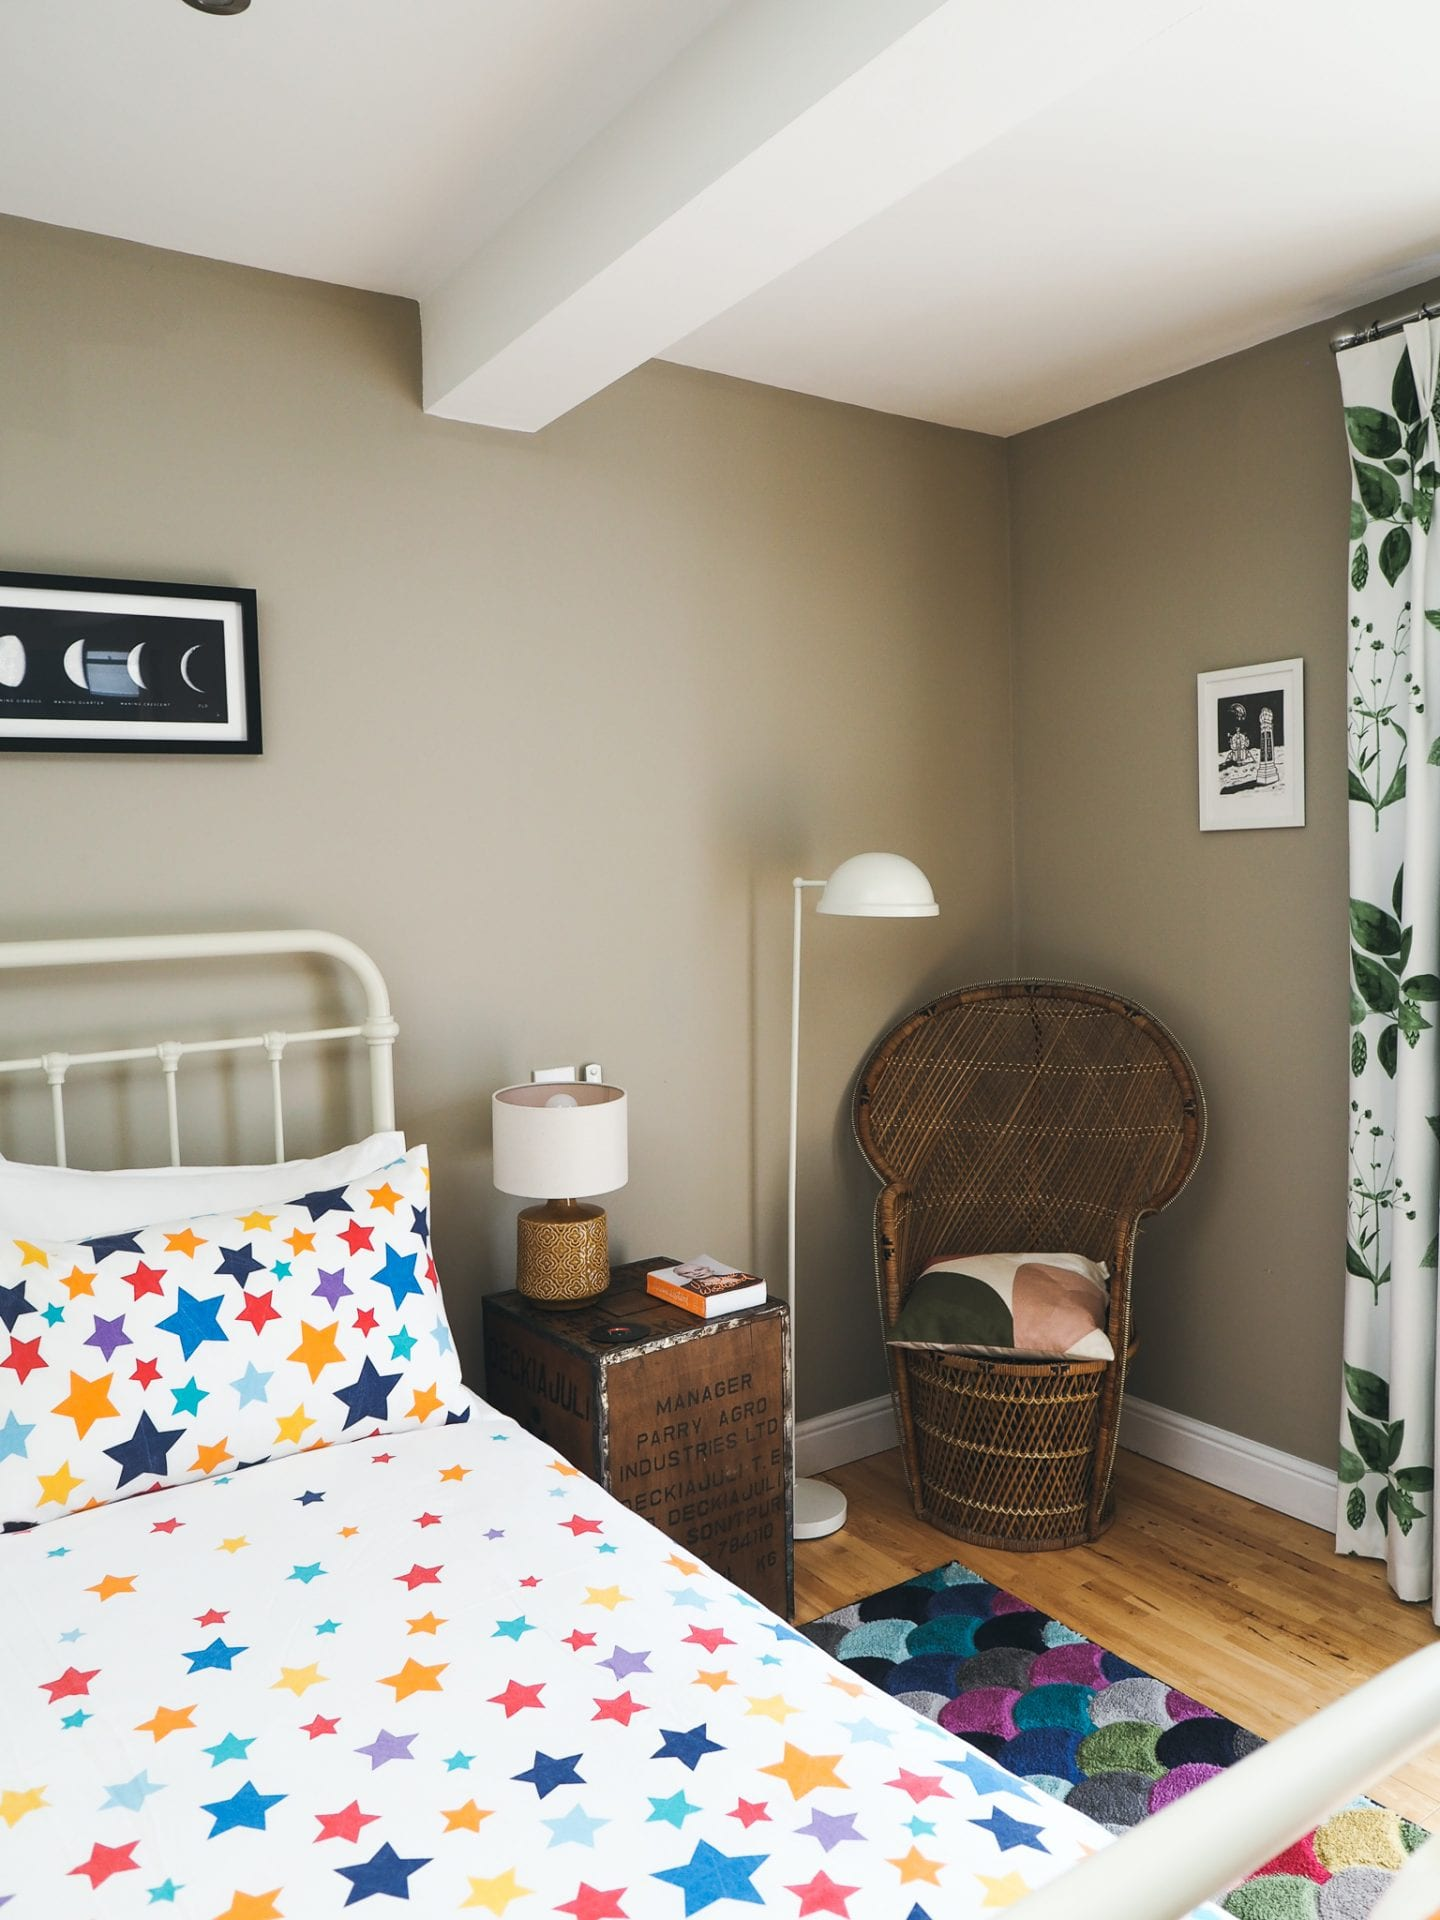 margate-colourful-airbnb-bedroom-labels-for-lunch-peacock-chair